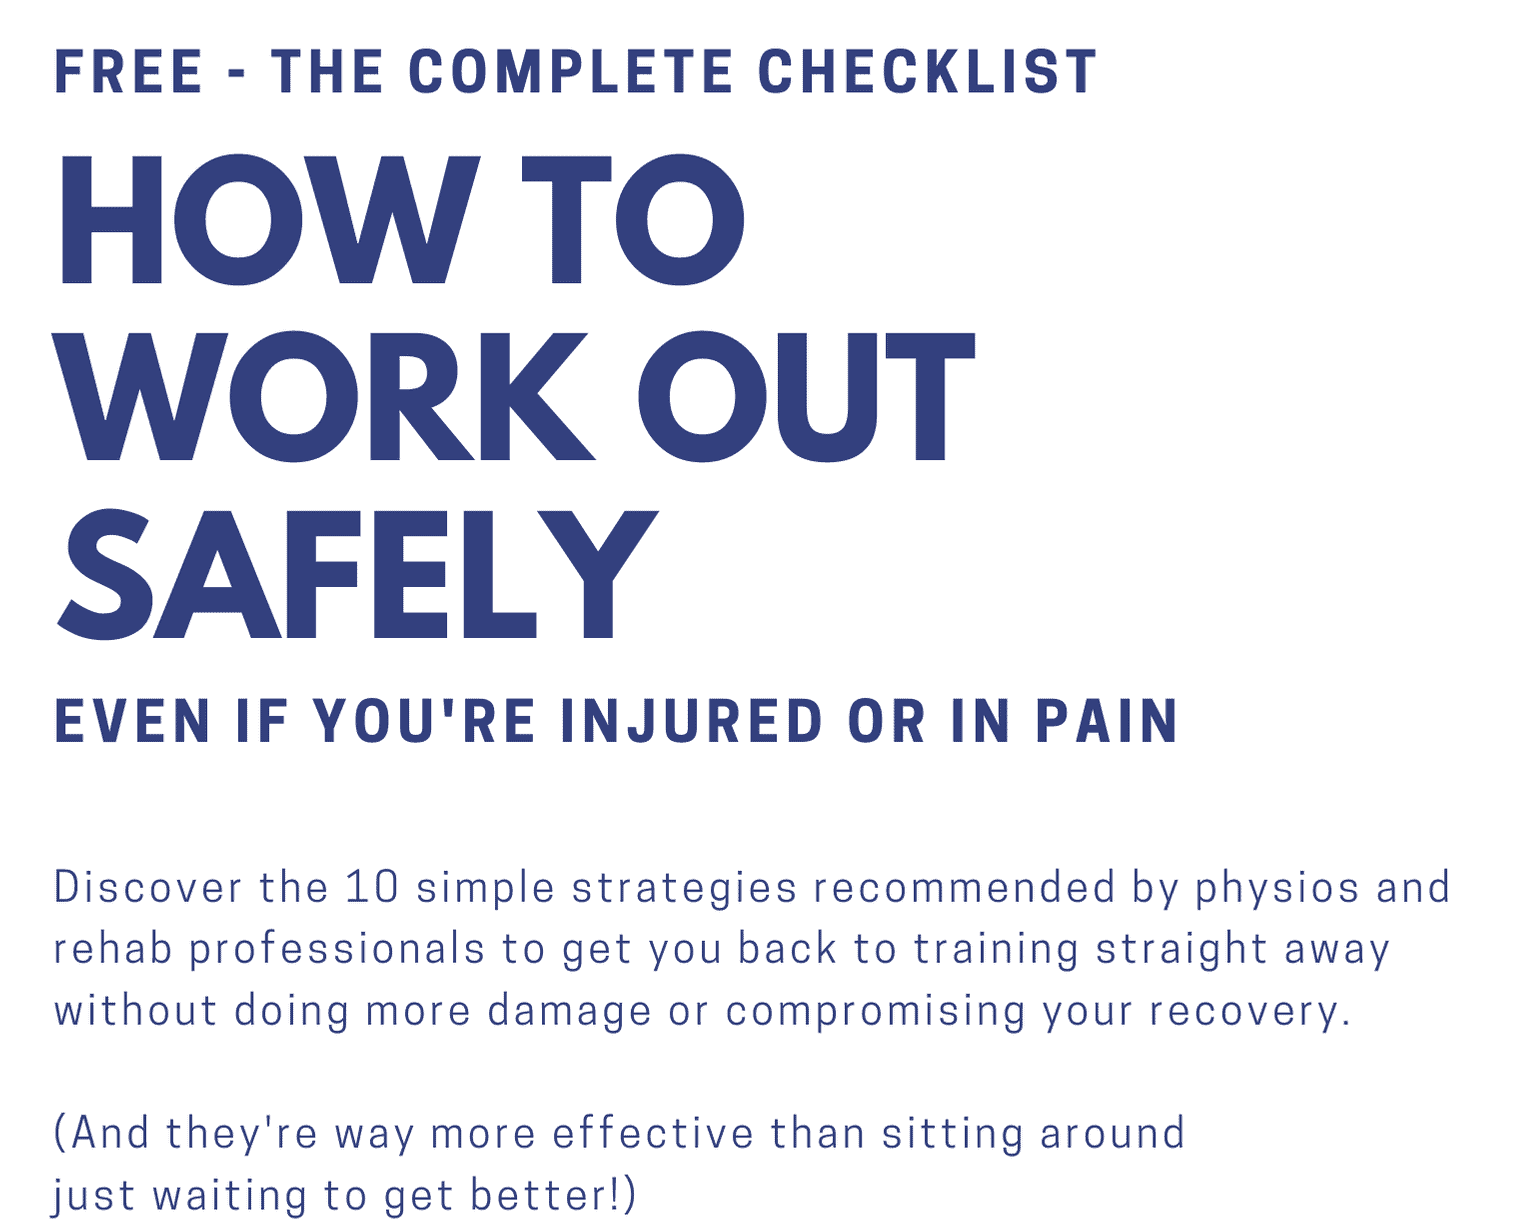 Workout Safely Checklist Free Download